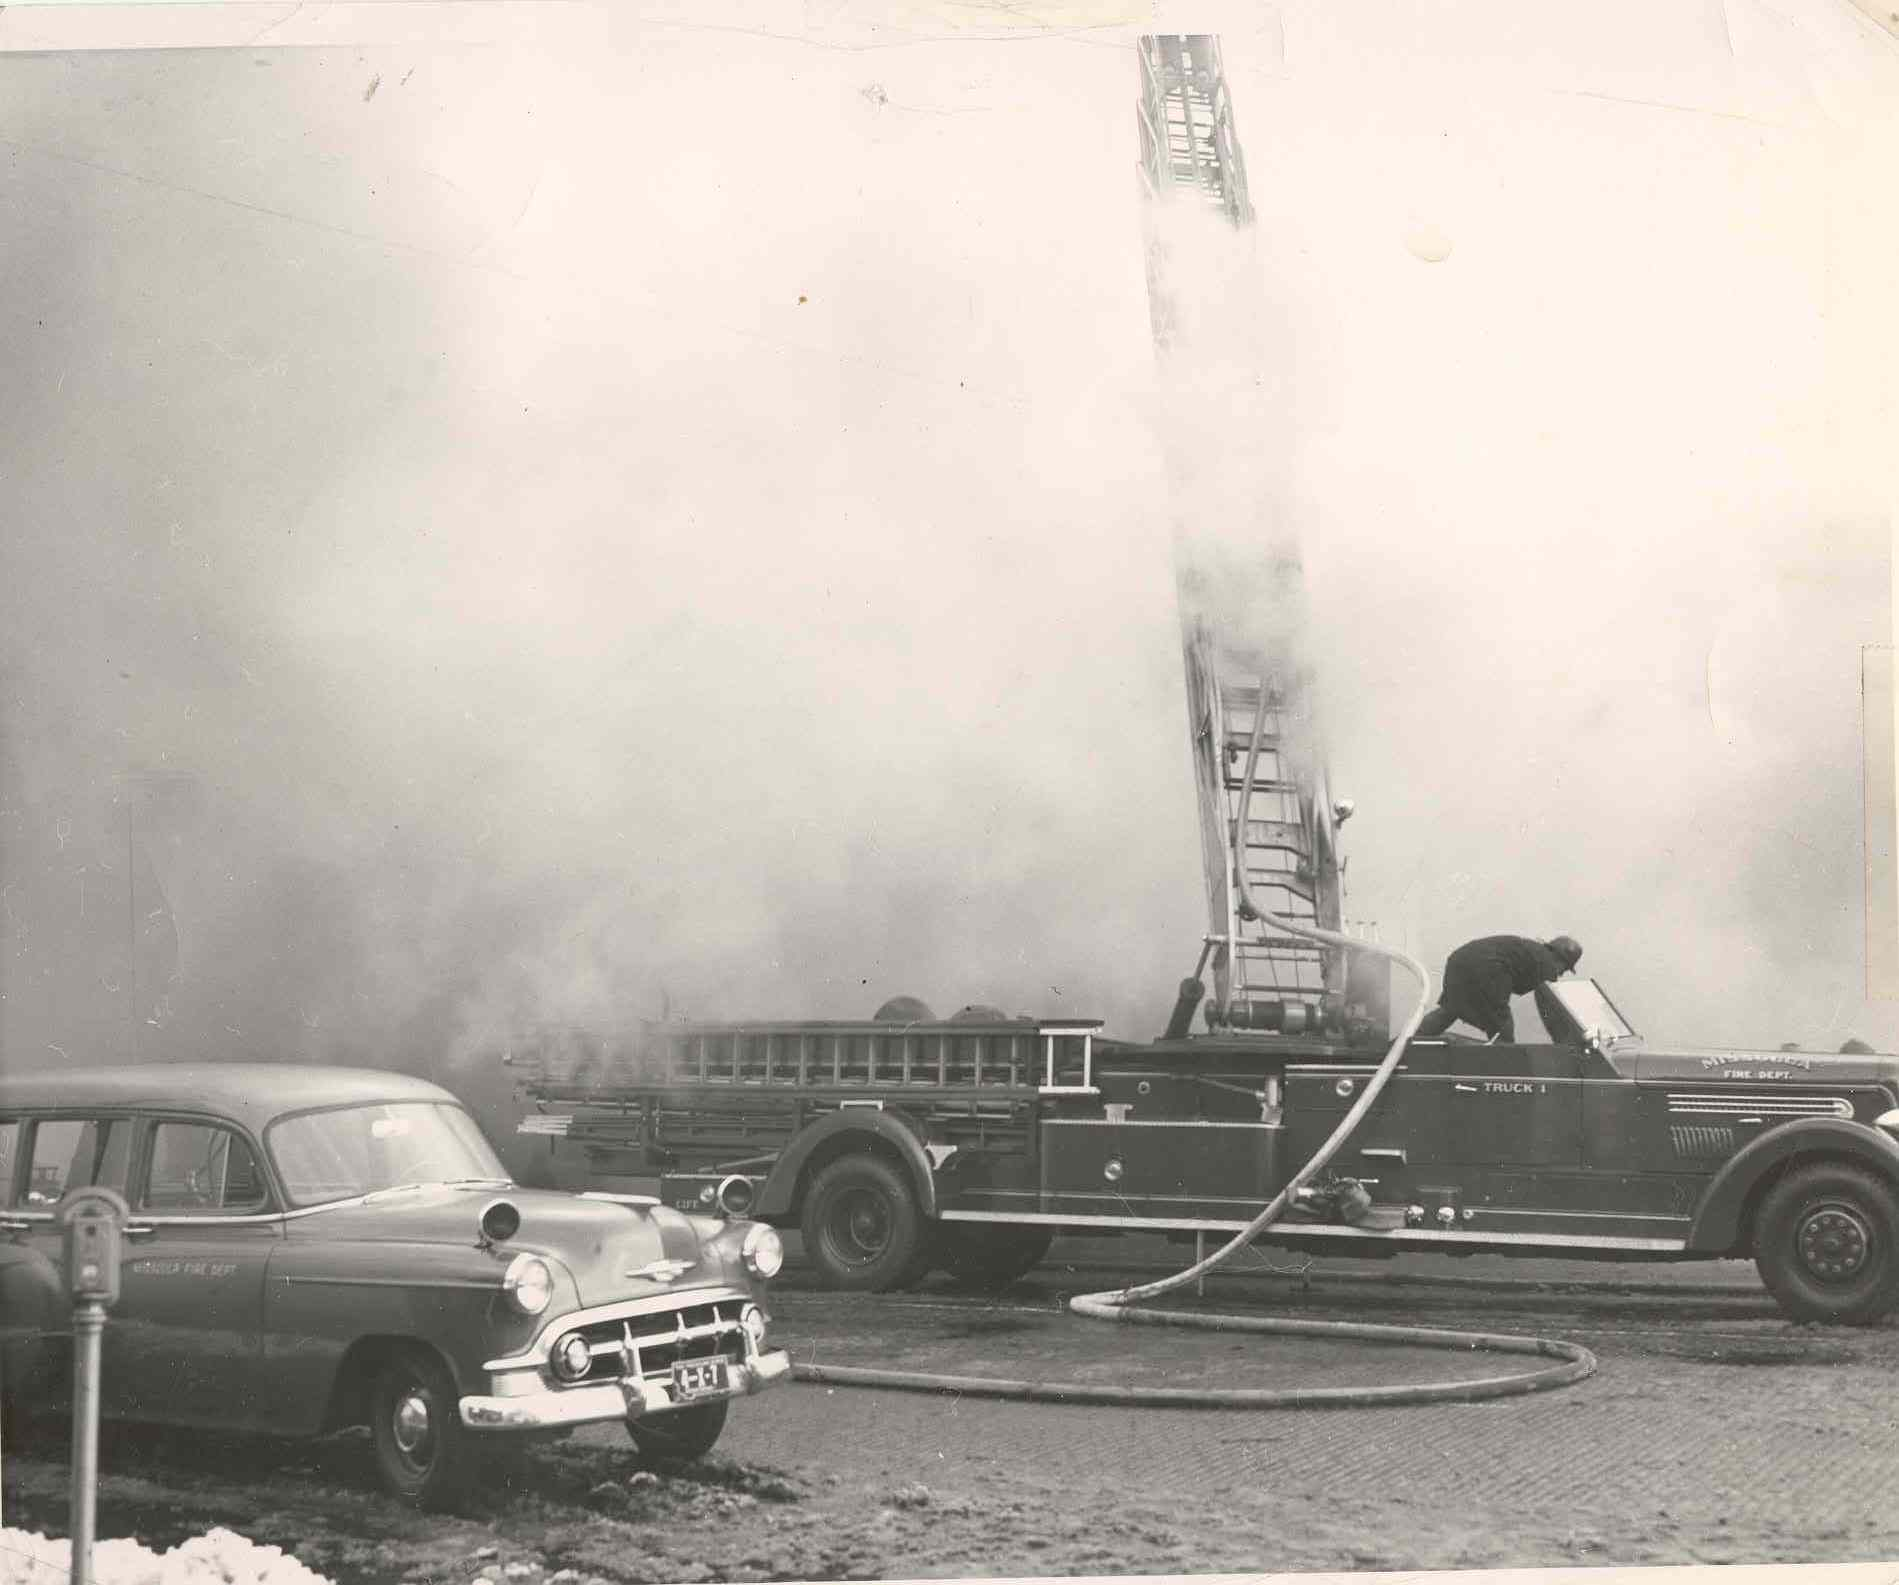 Ormeshers Fire-12/30/1951